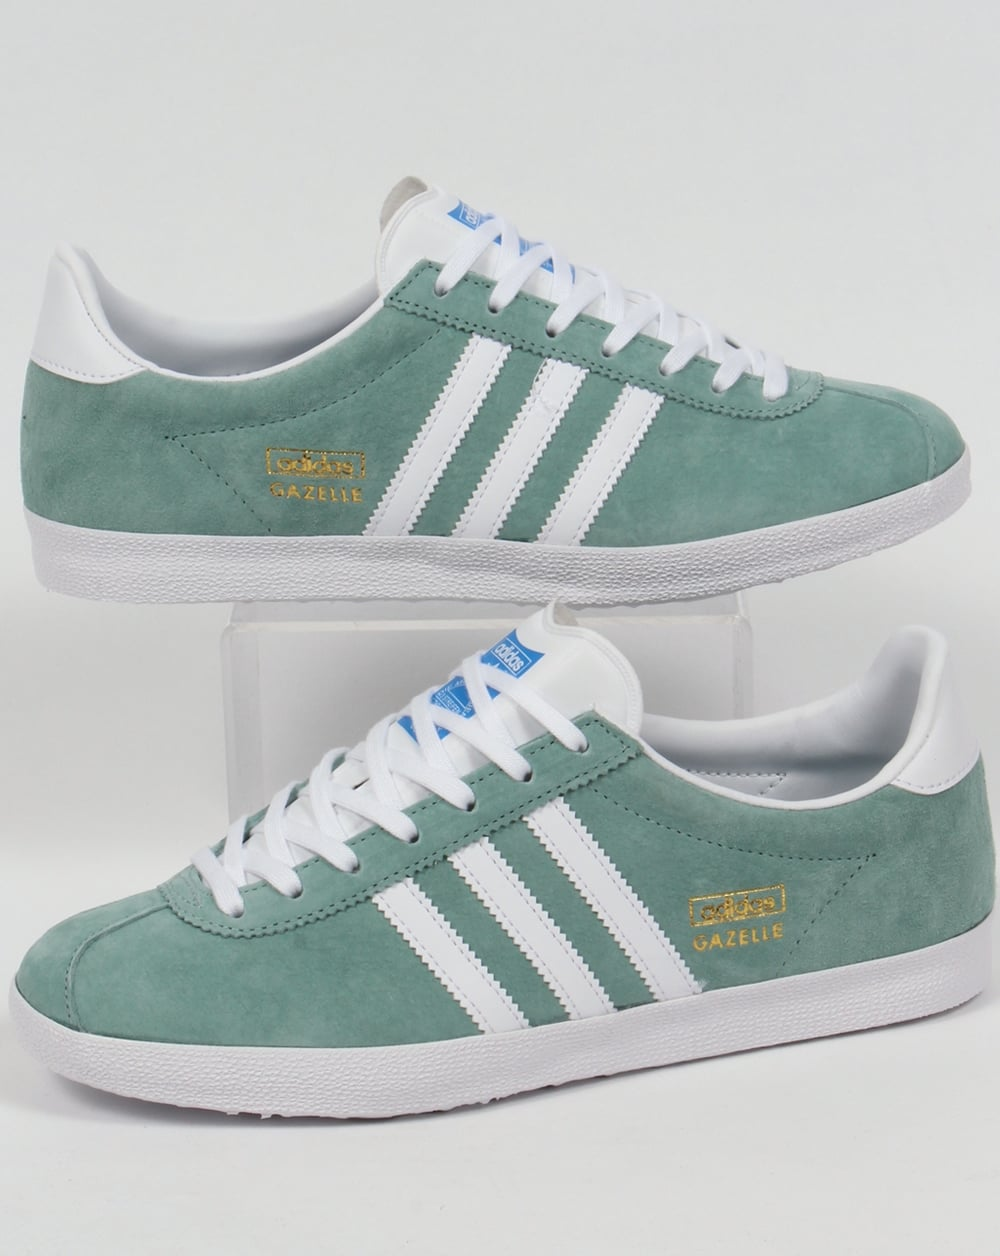 outlet store af945 04e1f adidas Trainers Adidas Gazelle OG Trainers Legend GreenWhite